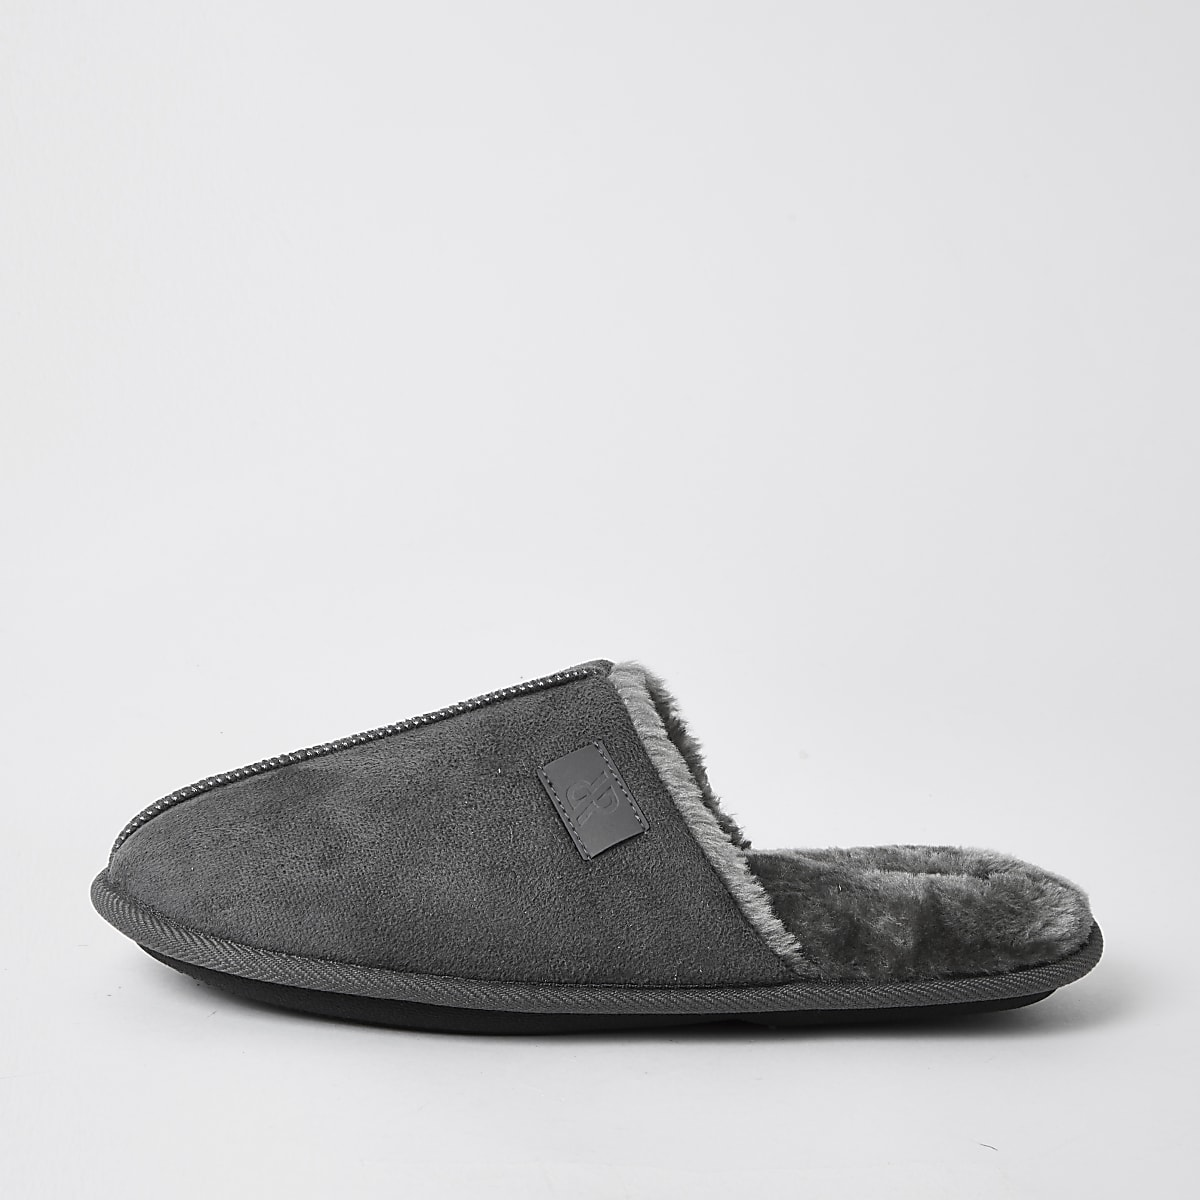 stylish slippers from River Island